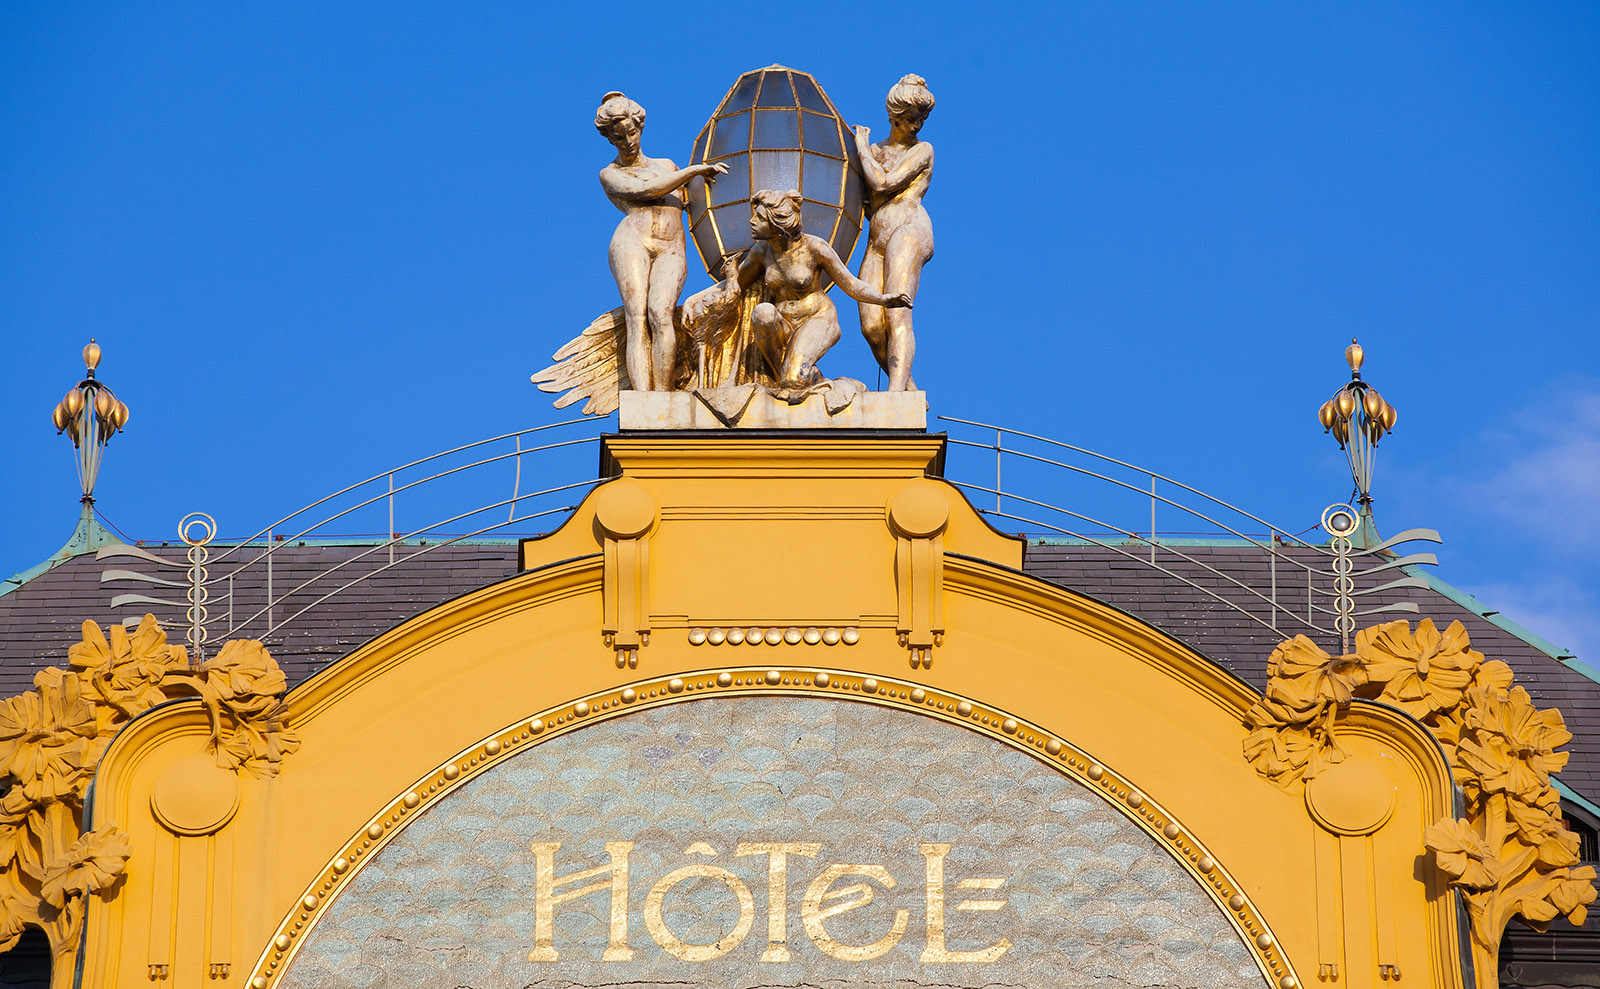 the facade of the hotel europa in prague against a blue sky